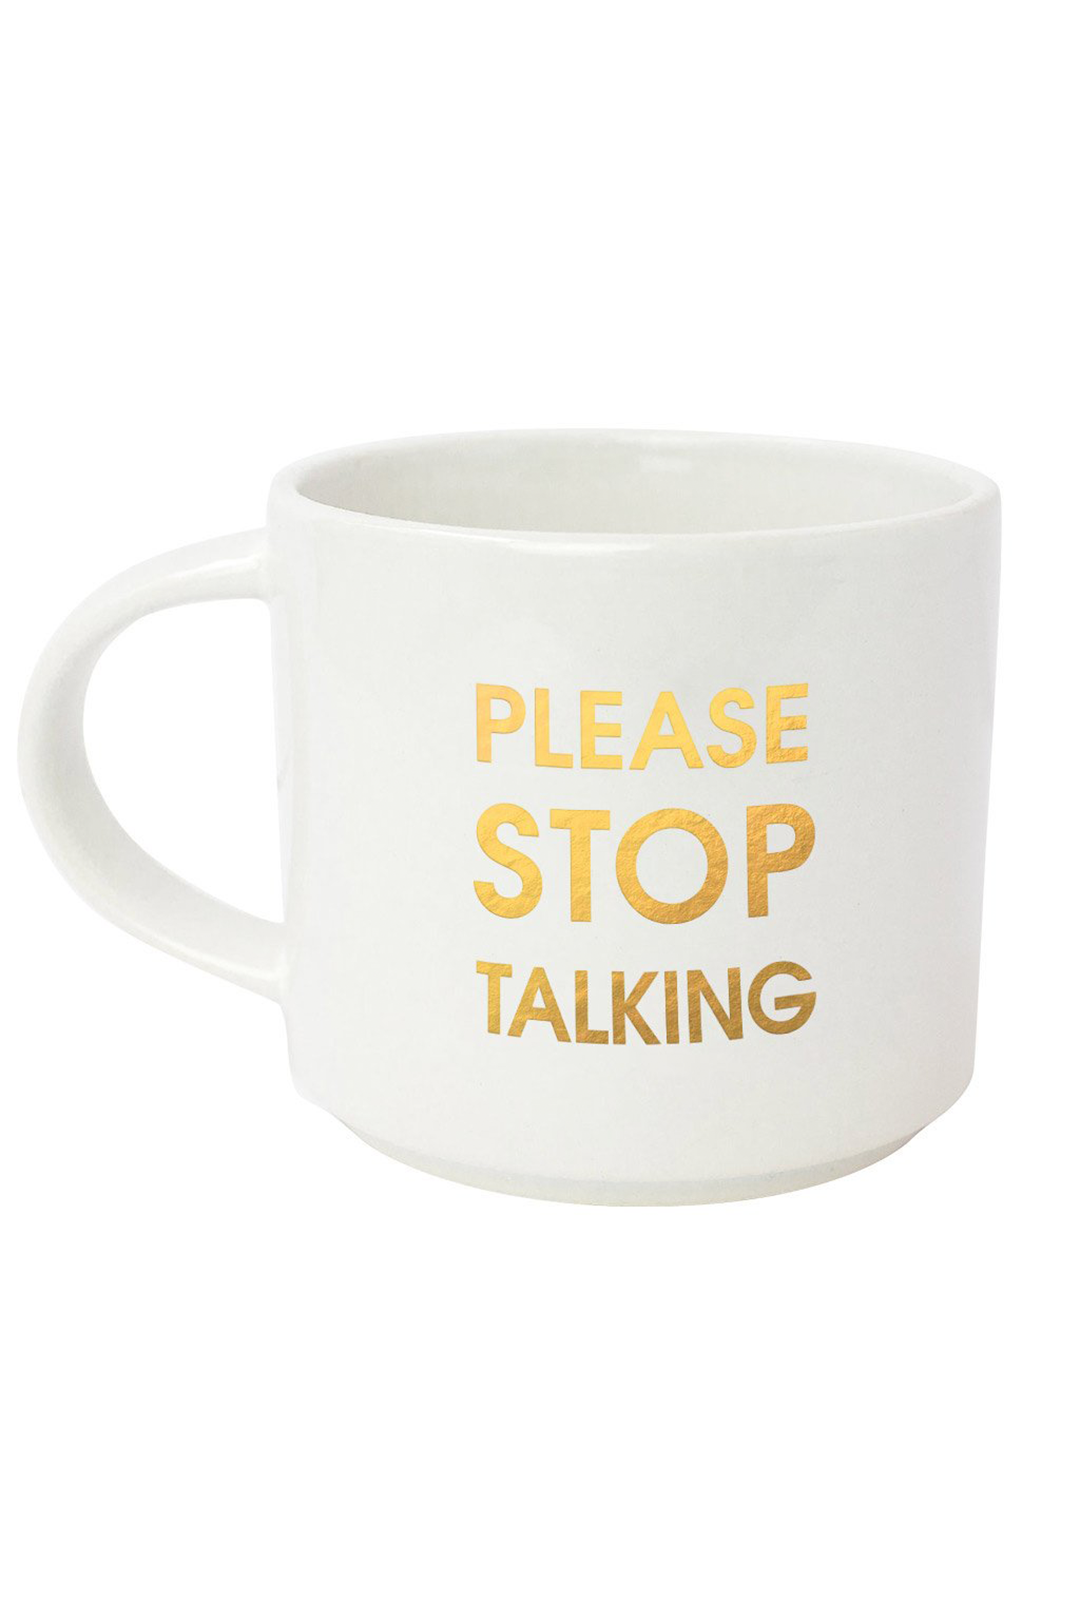 Please Stop Talking Gold Metallic Mug